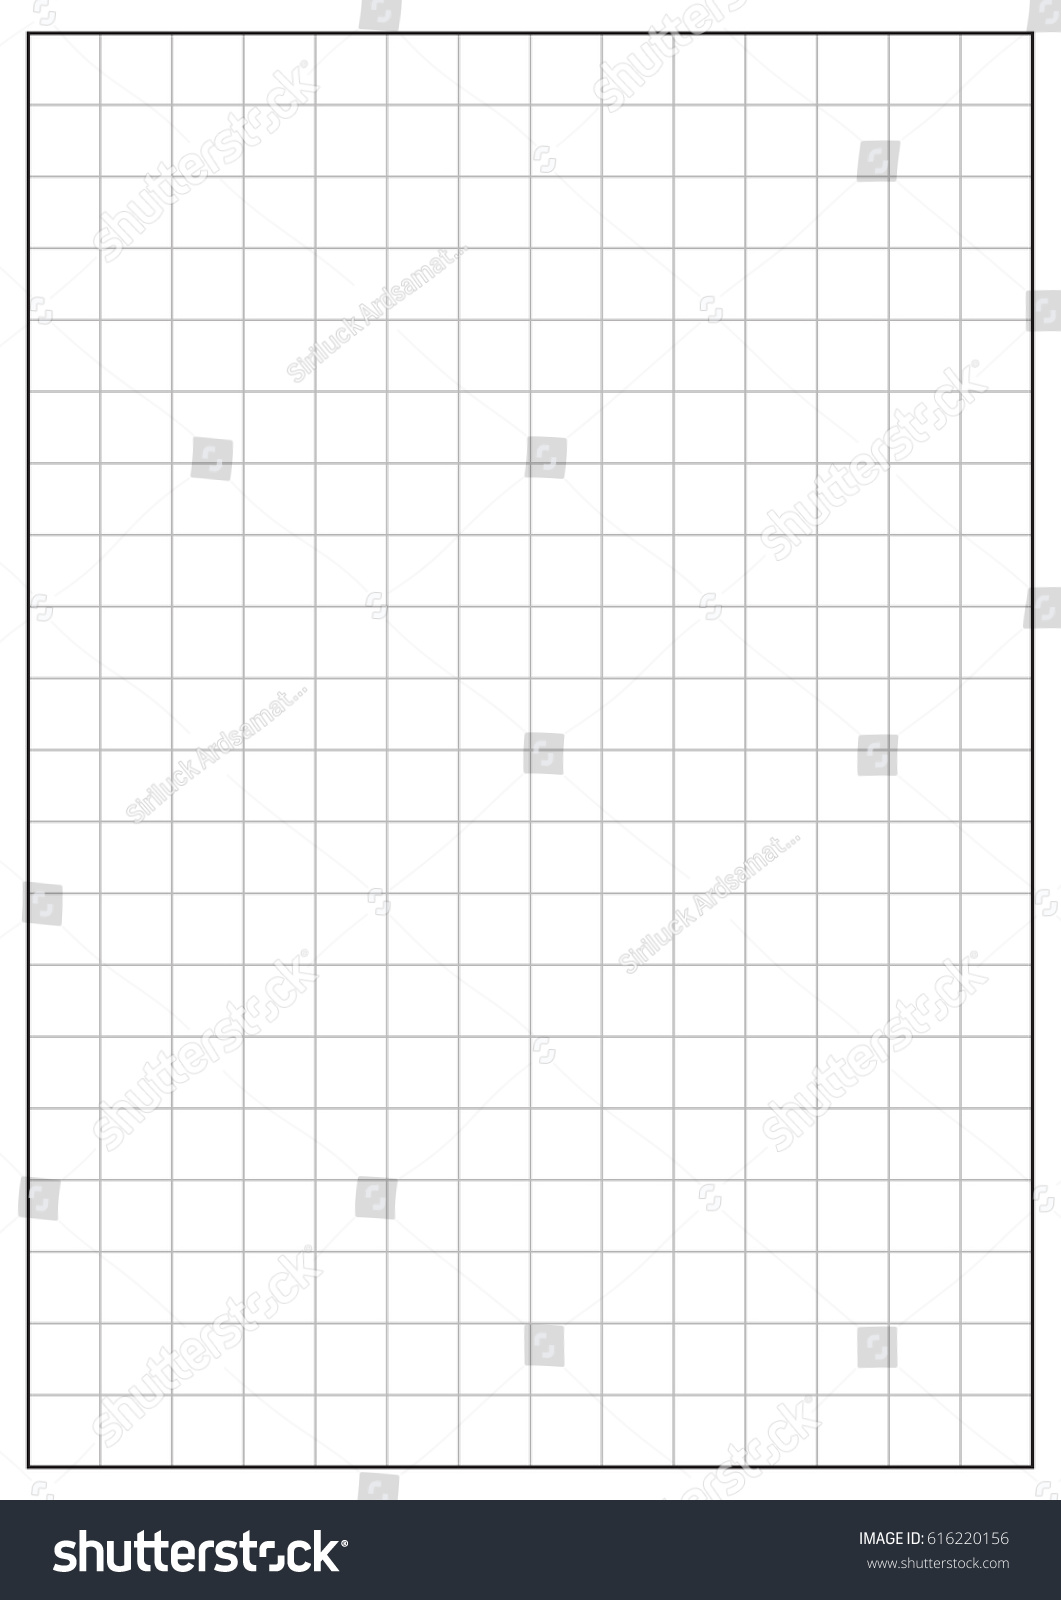 Free printable graph paper 1 inch